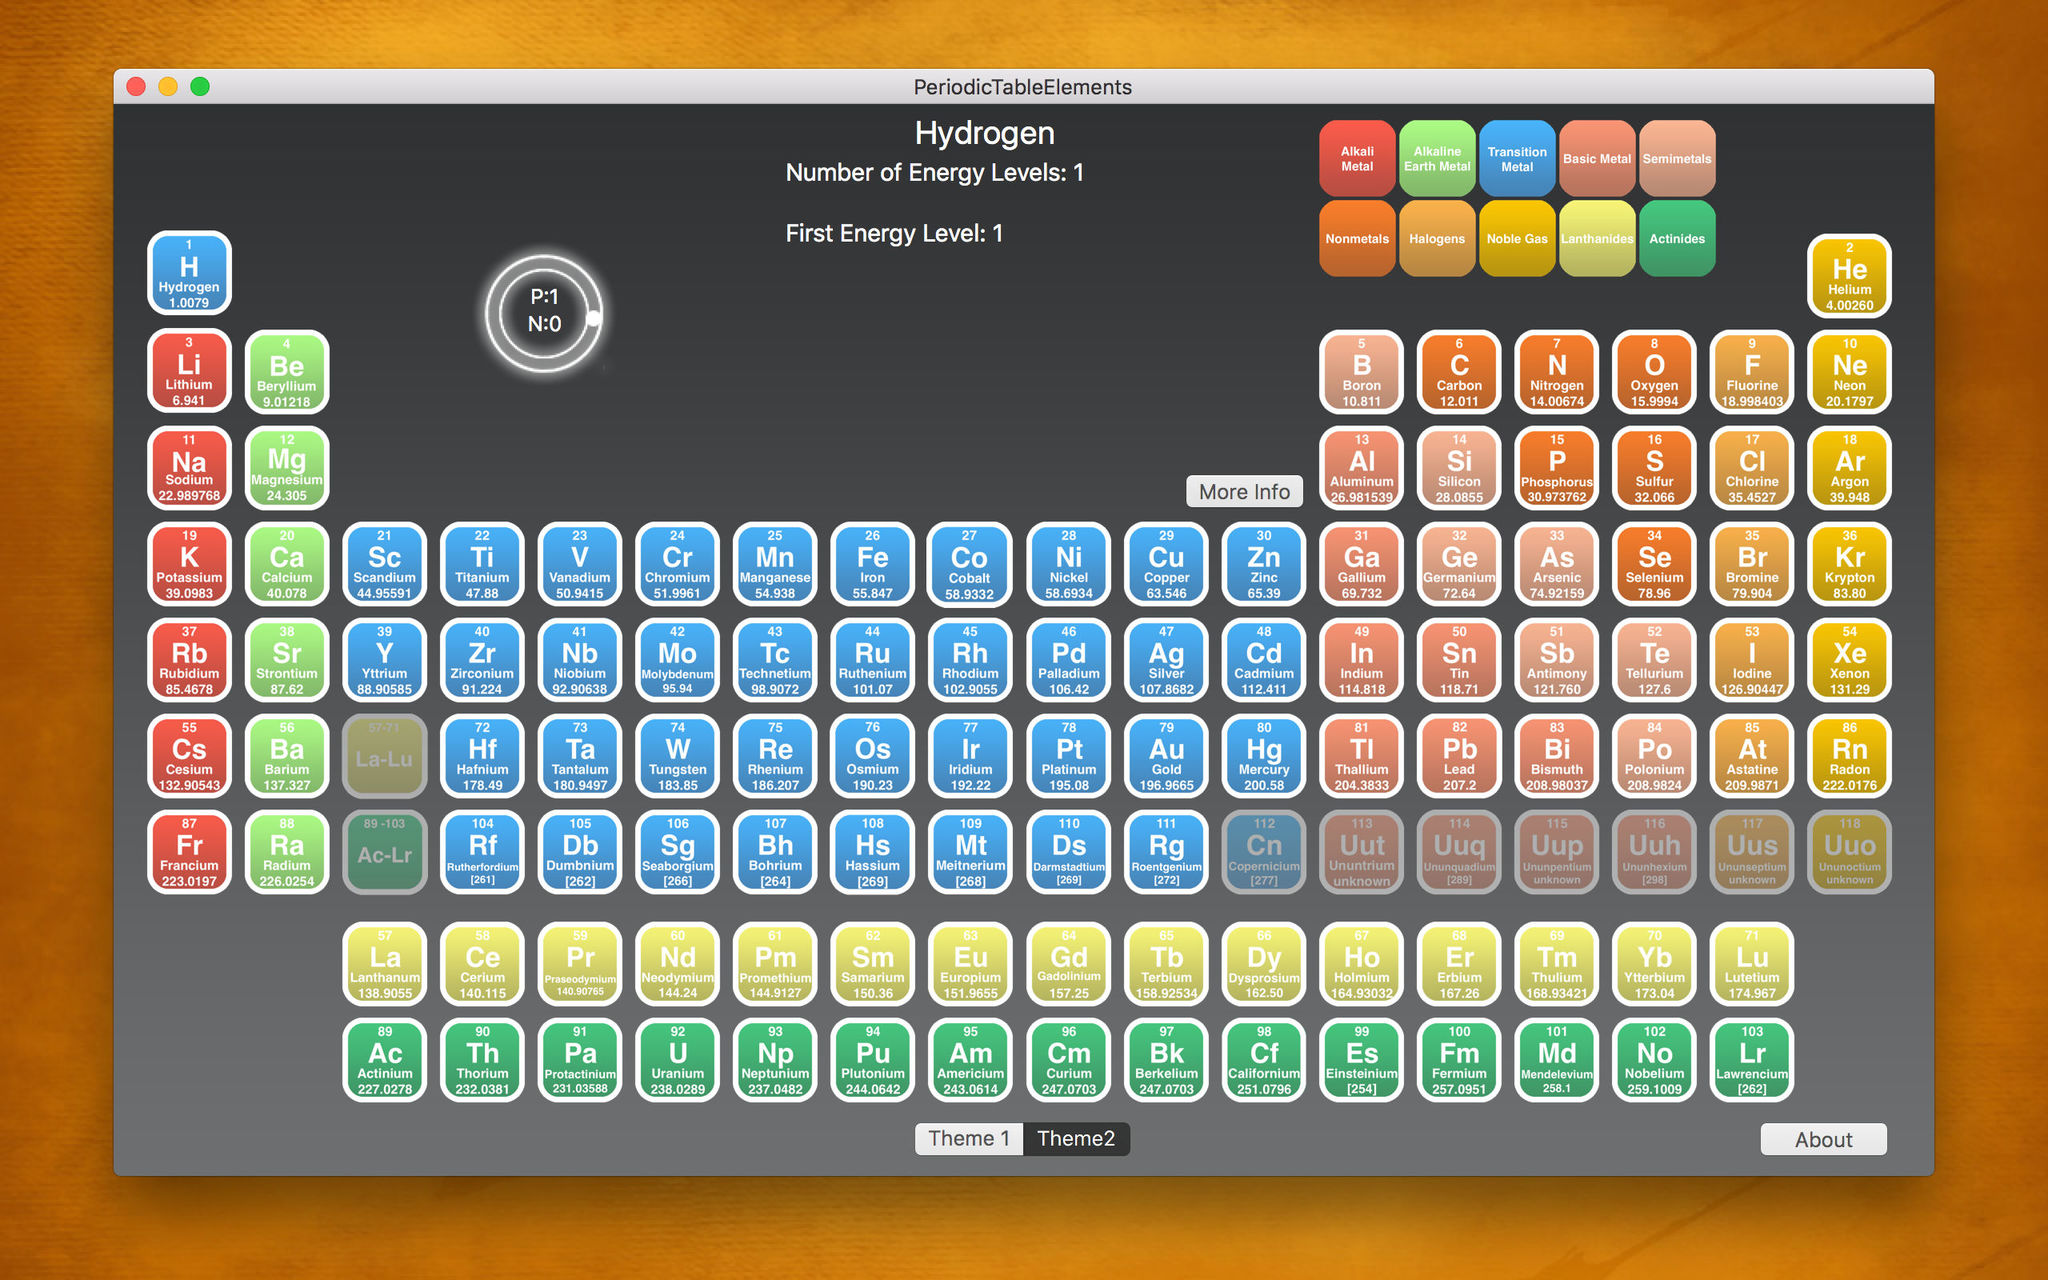 Screenshot 2 for PeriodicTableElements